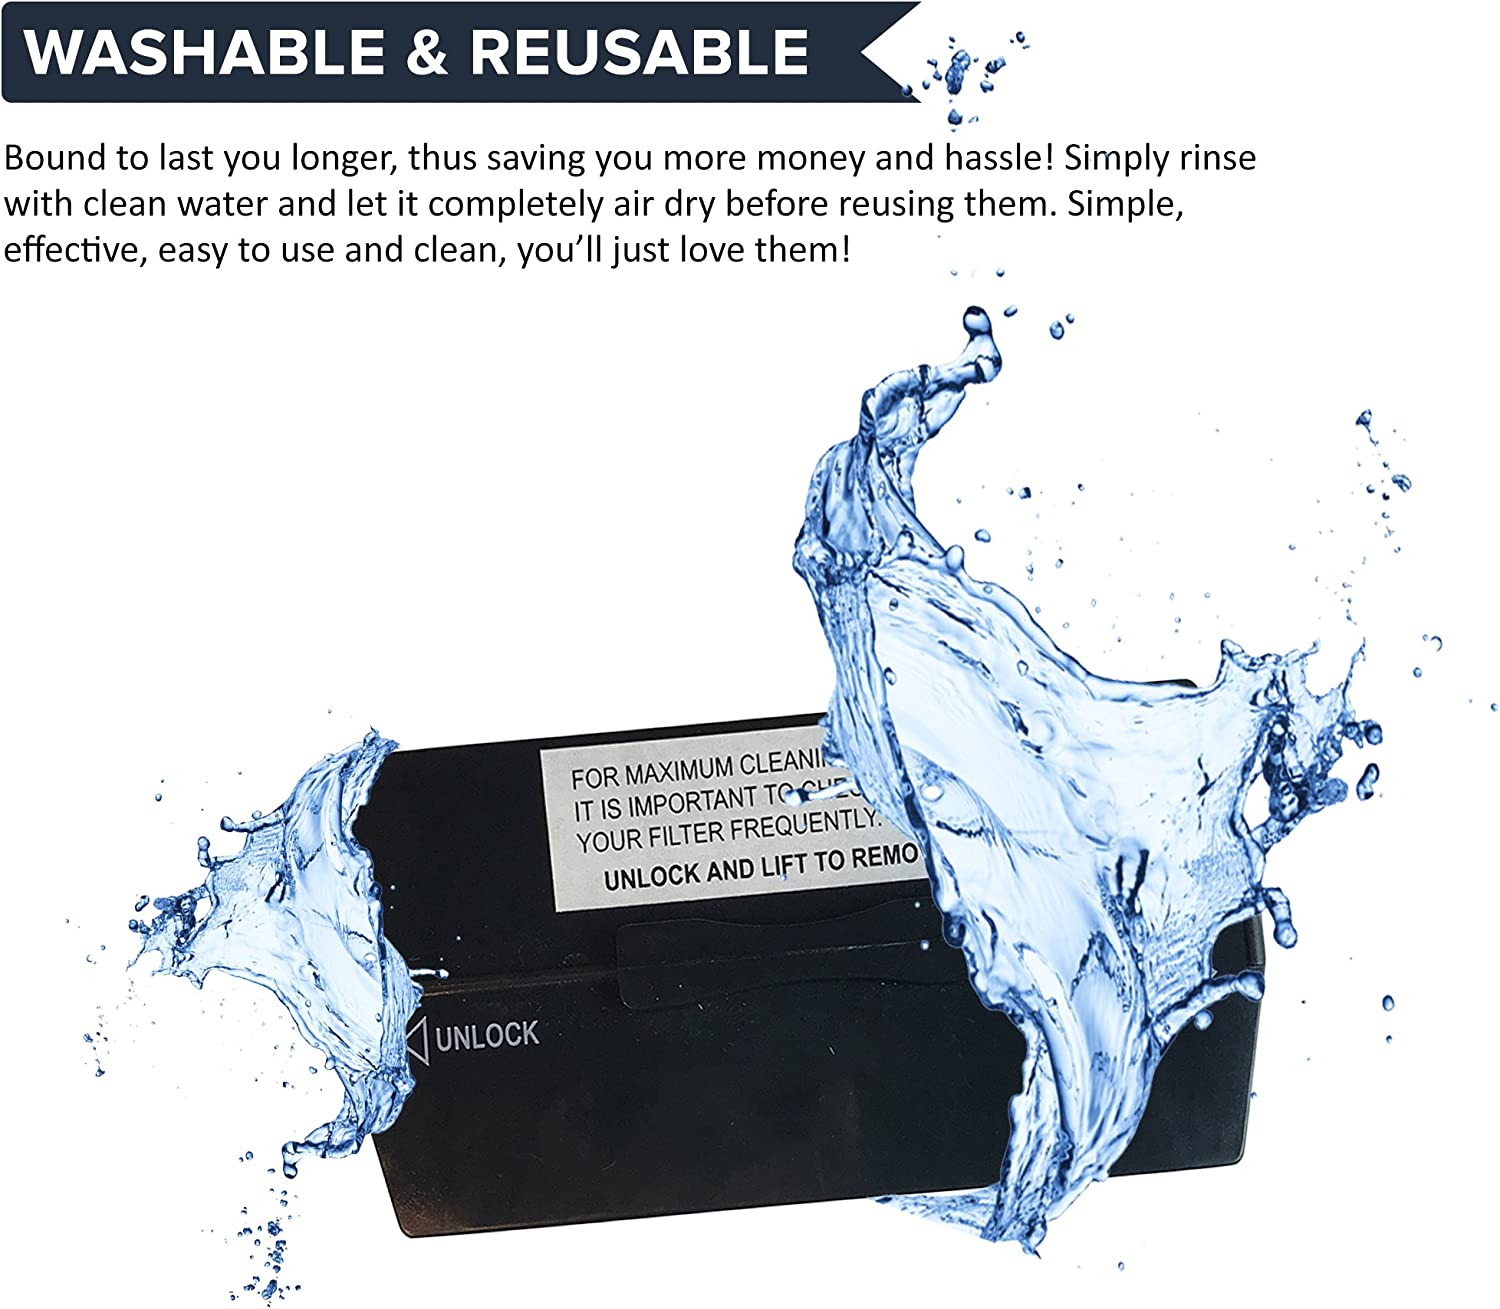 Think Crucial 4 Replacement for Dirt Devil F13 HEPA Style Filter /& Foam Pre-Filter Compatible with Part # 3LK0540001 Washable /& Reusable